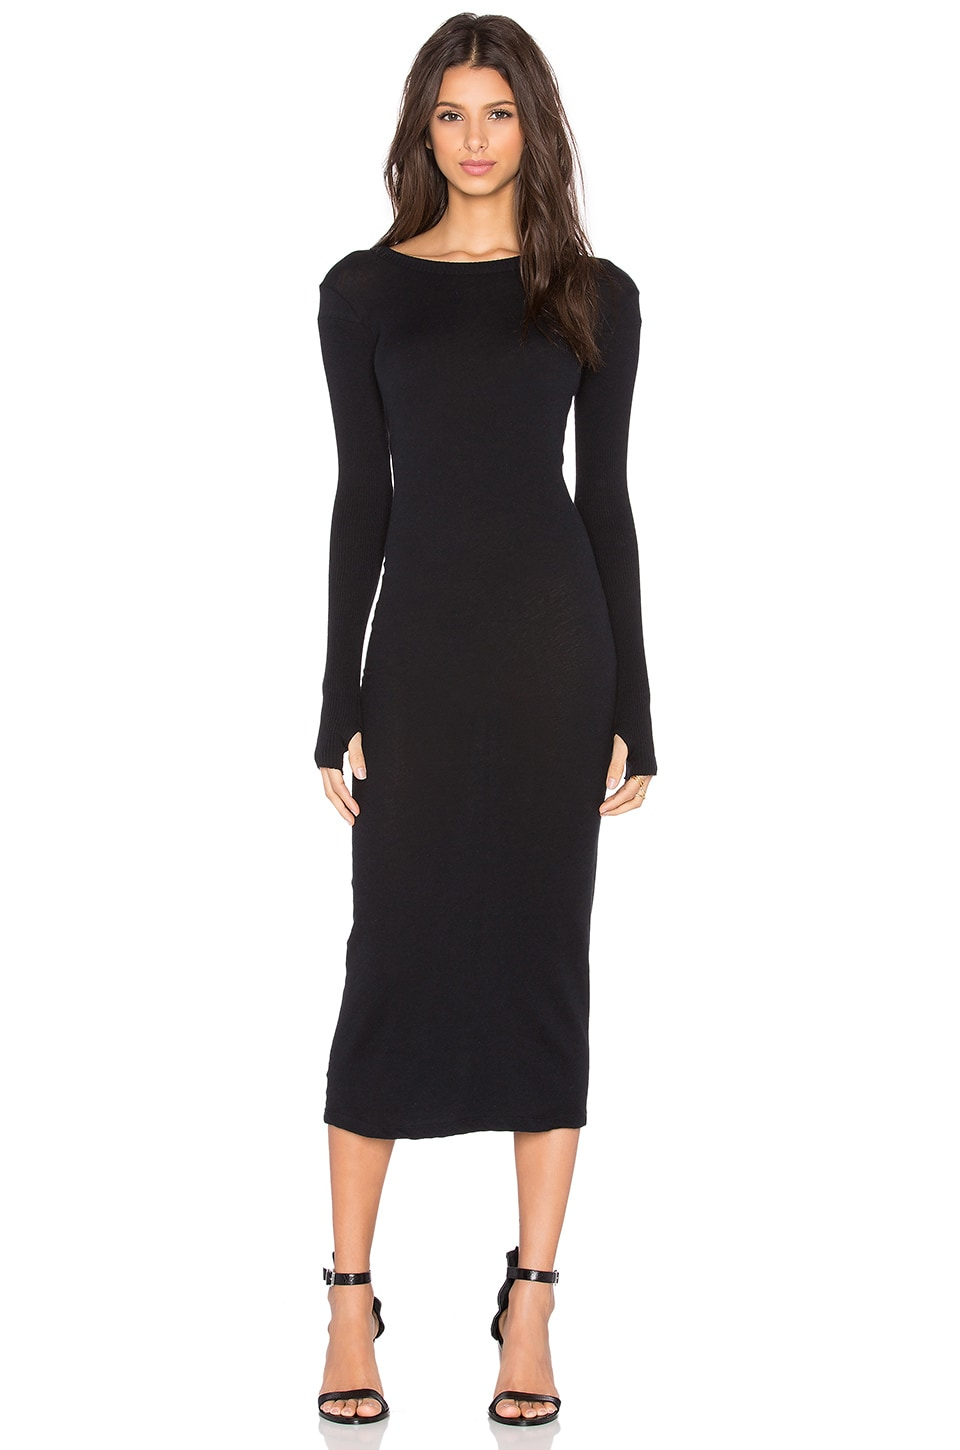 Enza Costa Cashmere Long Sleeve Crew Neck Dress in Black